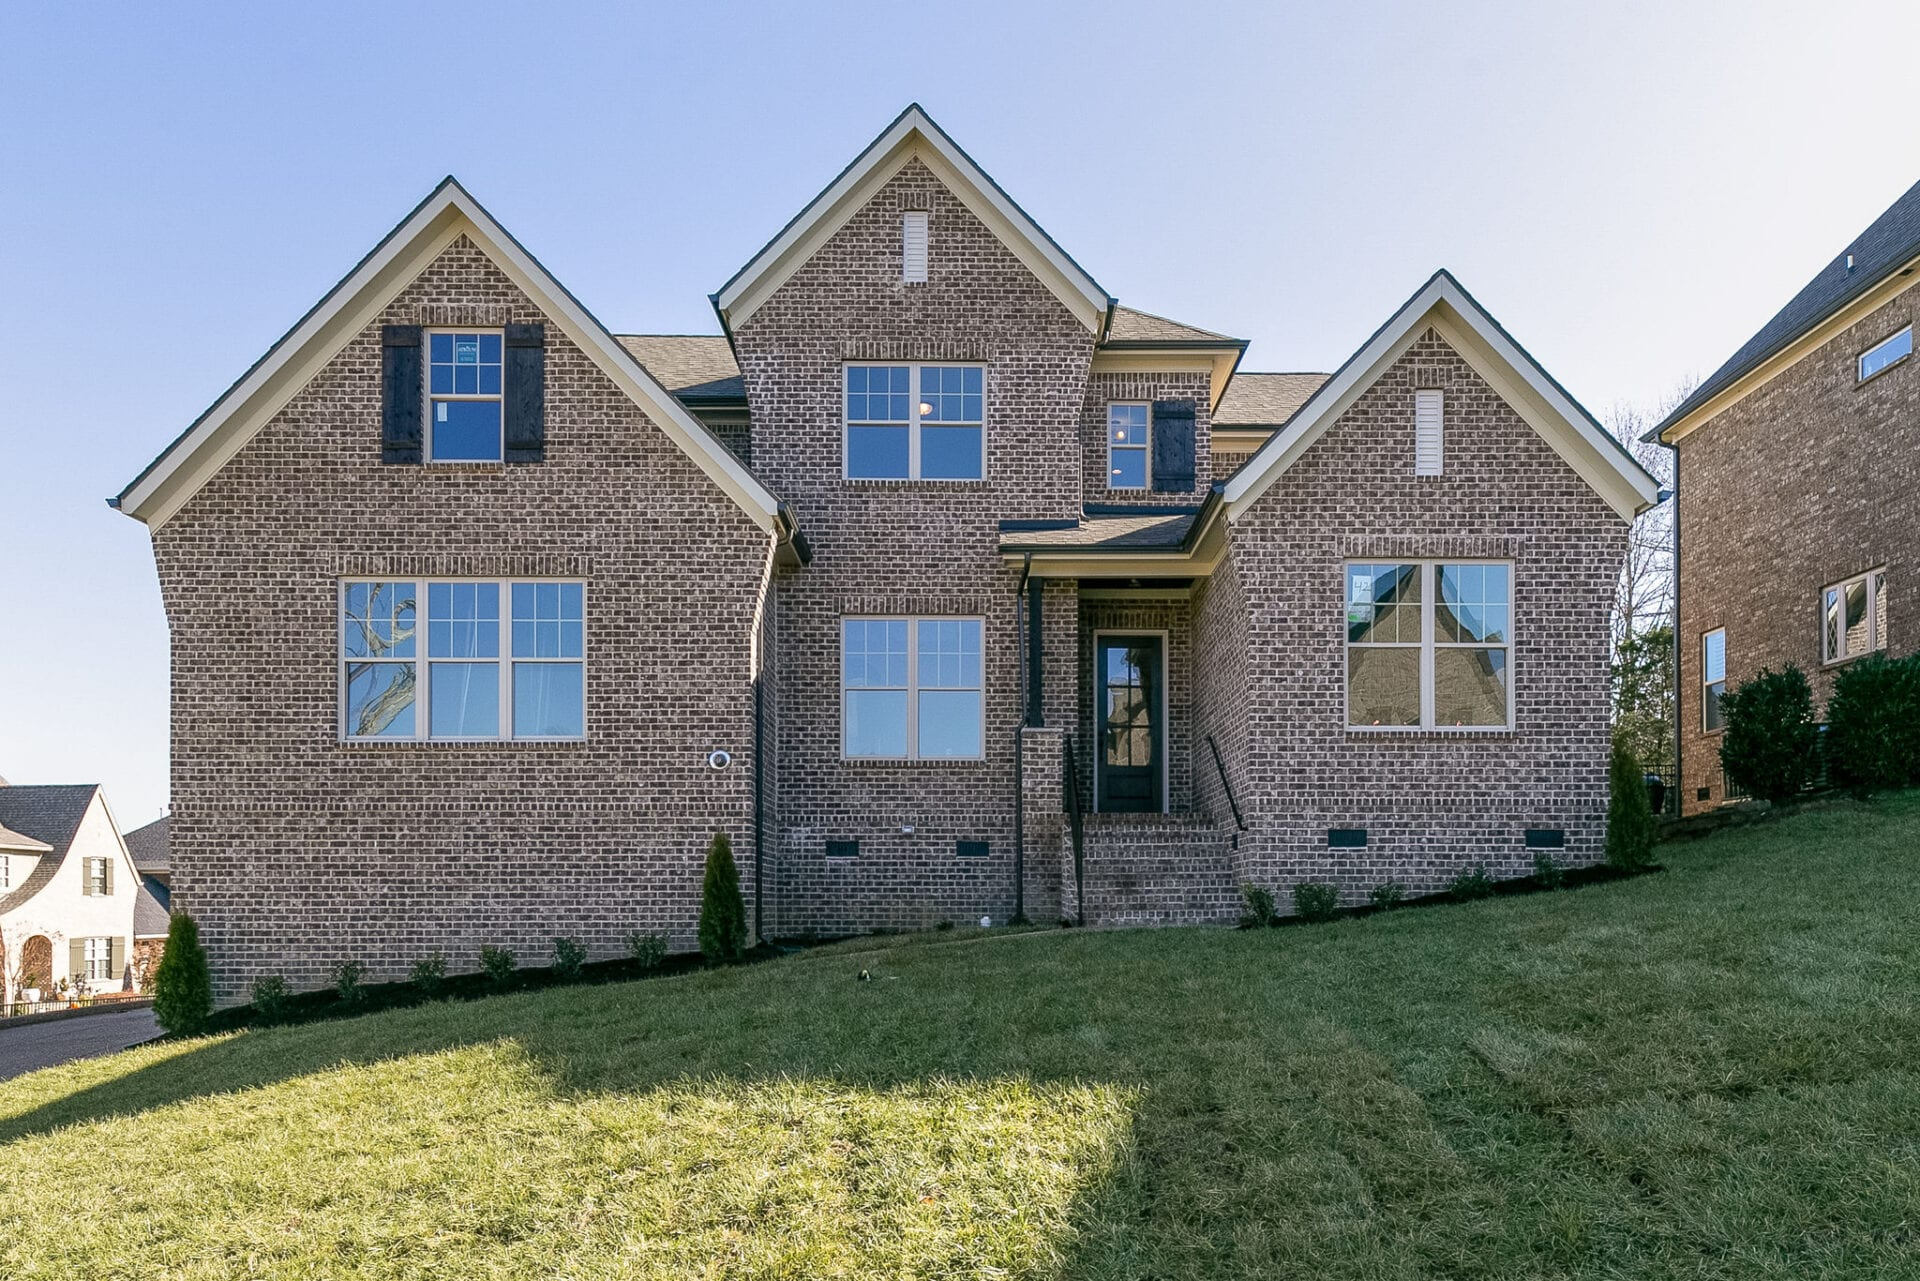 New Home for Sale in Enclave at Dove Lake. It is one of Williamson County's newest exclusive home communities. Home has elegant floor plans with exquisite brick and stone exteriors.